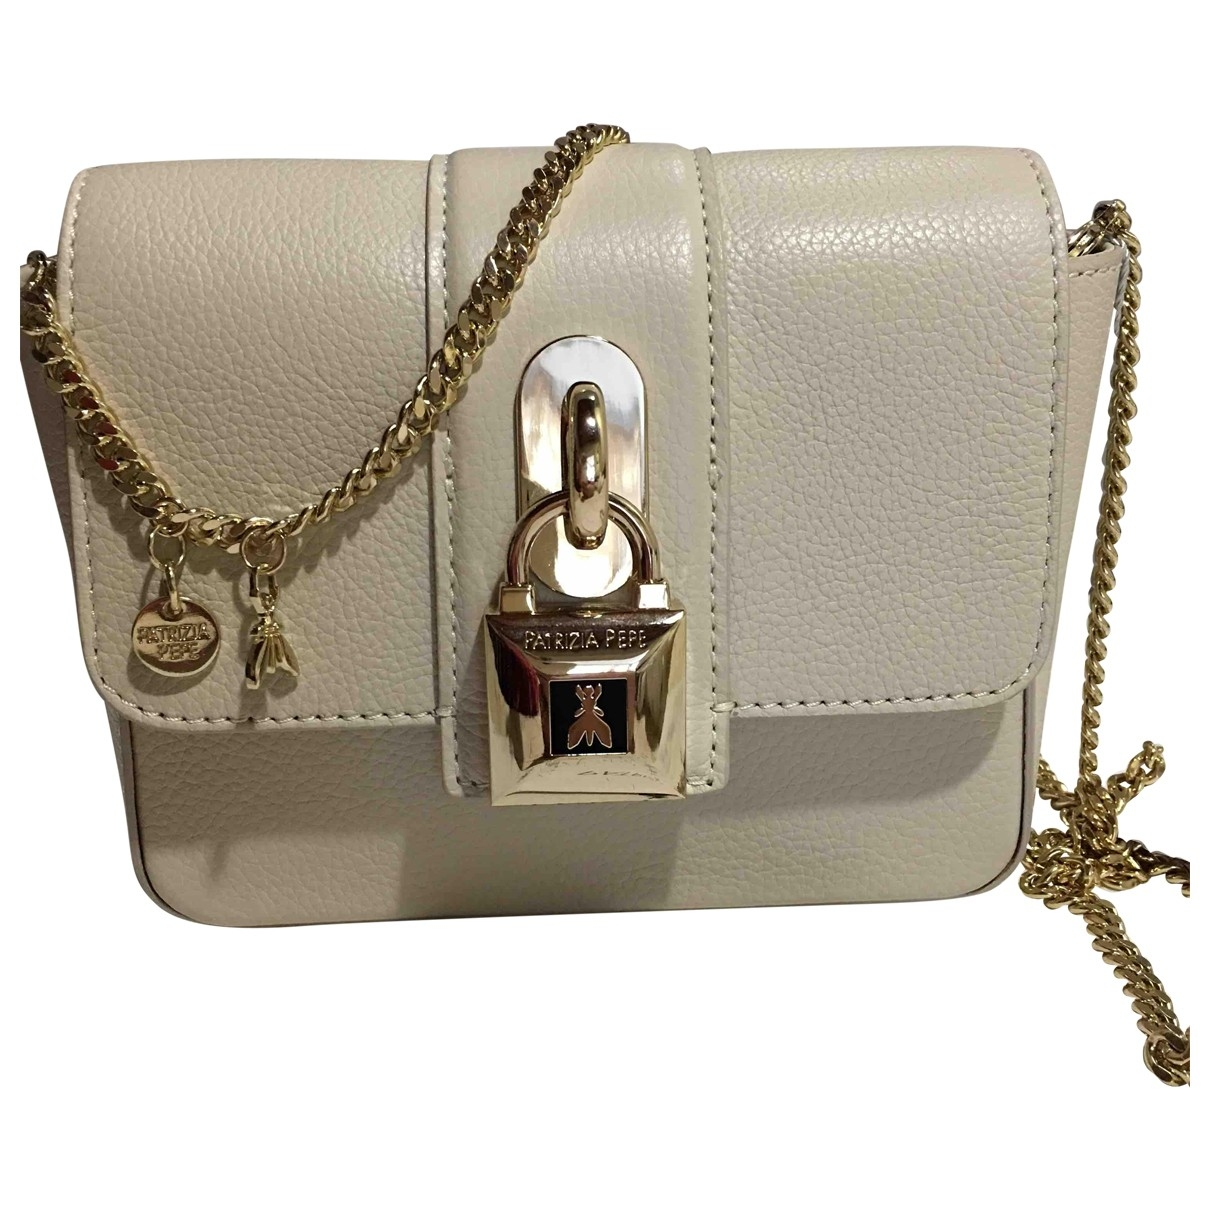 Patrizia Pepe \N Beige Leather handbag for Women \N